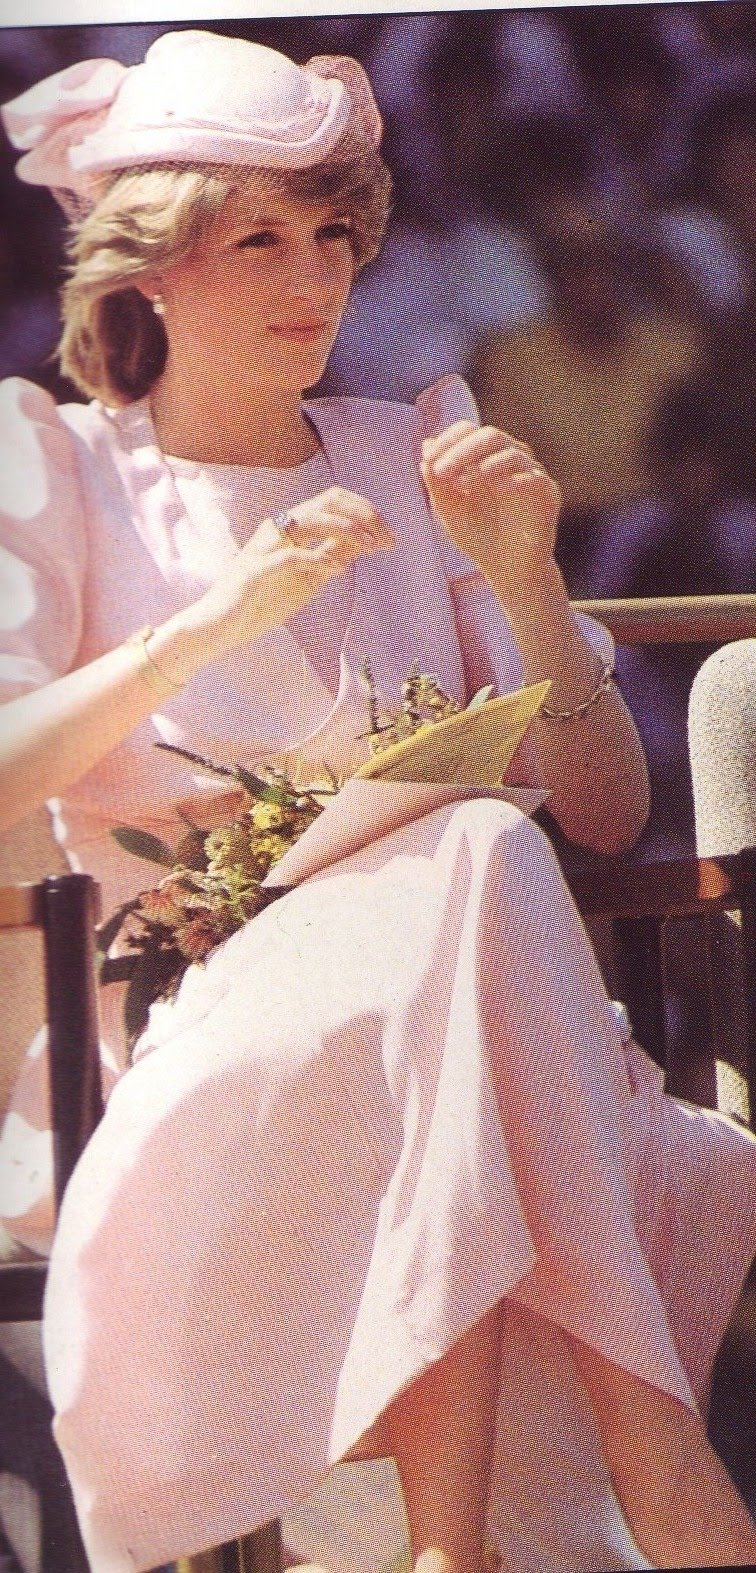 A date with diana in Australia